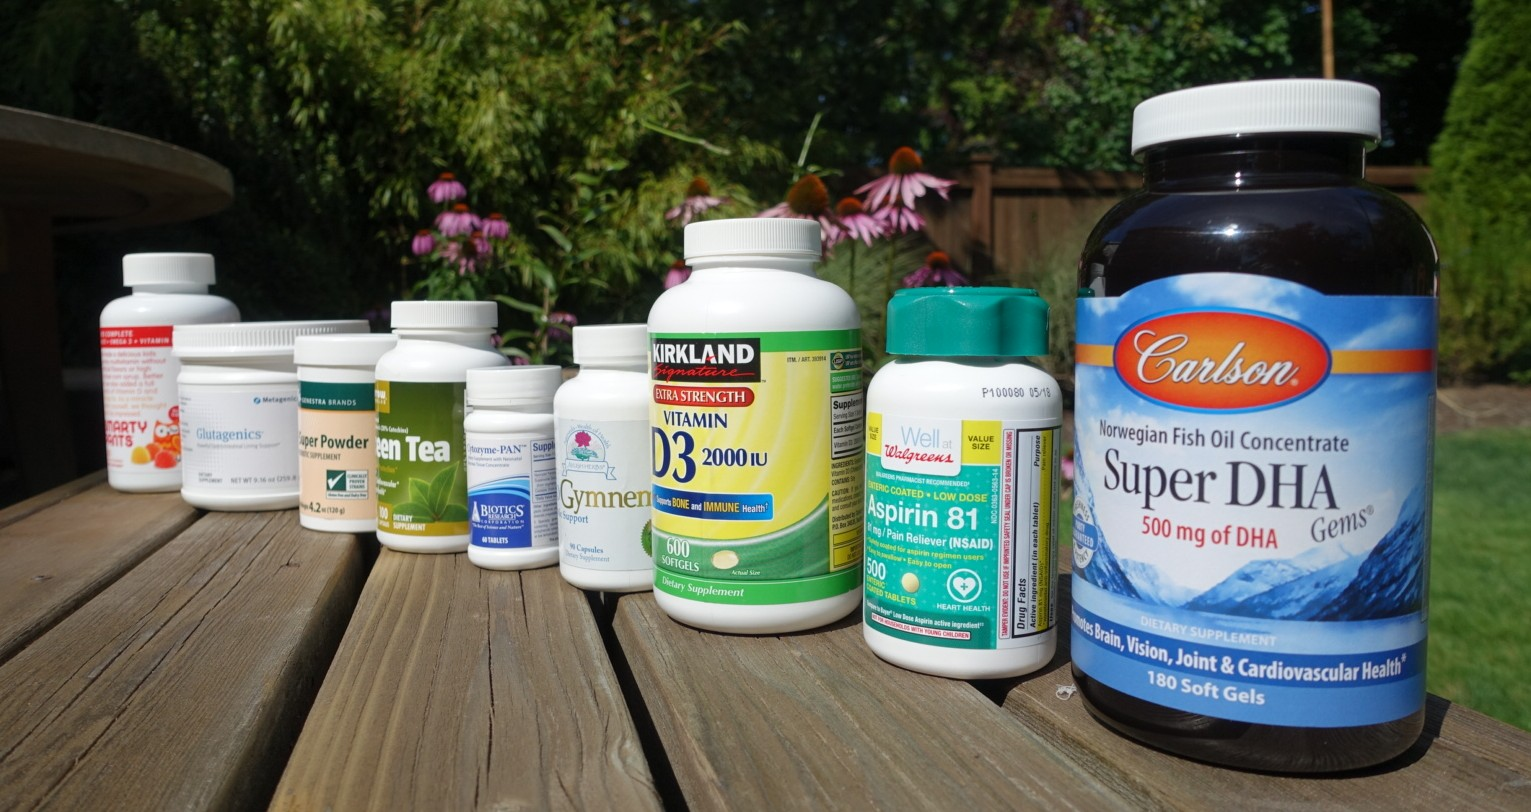 Our supplement collection